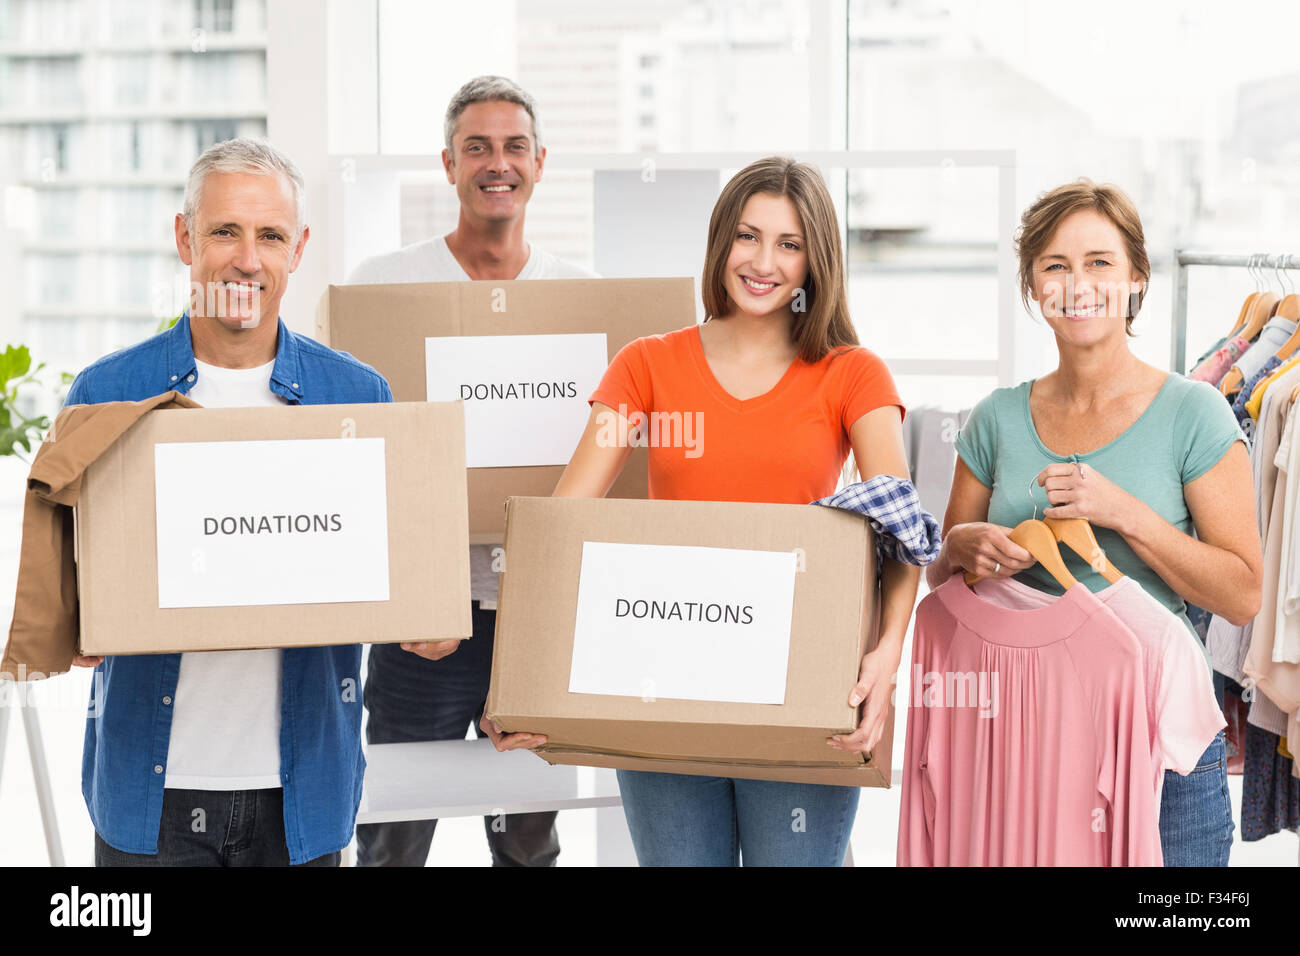 Smiling casual business people with donation boxes - Stock Image